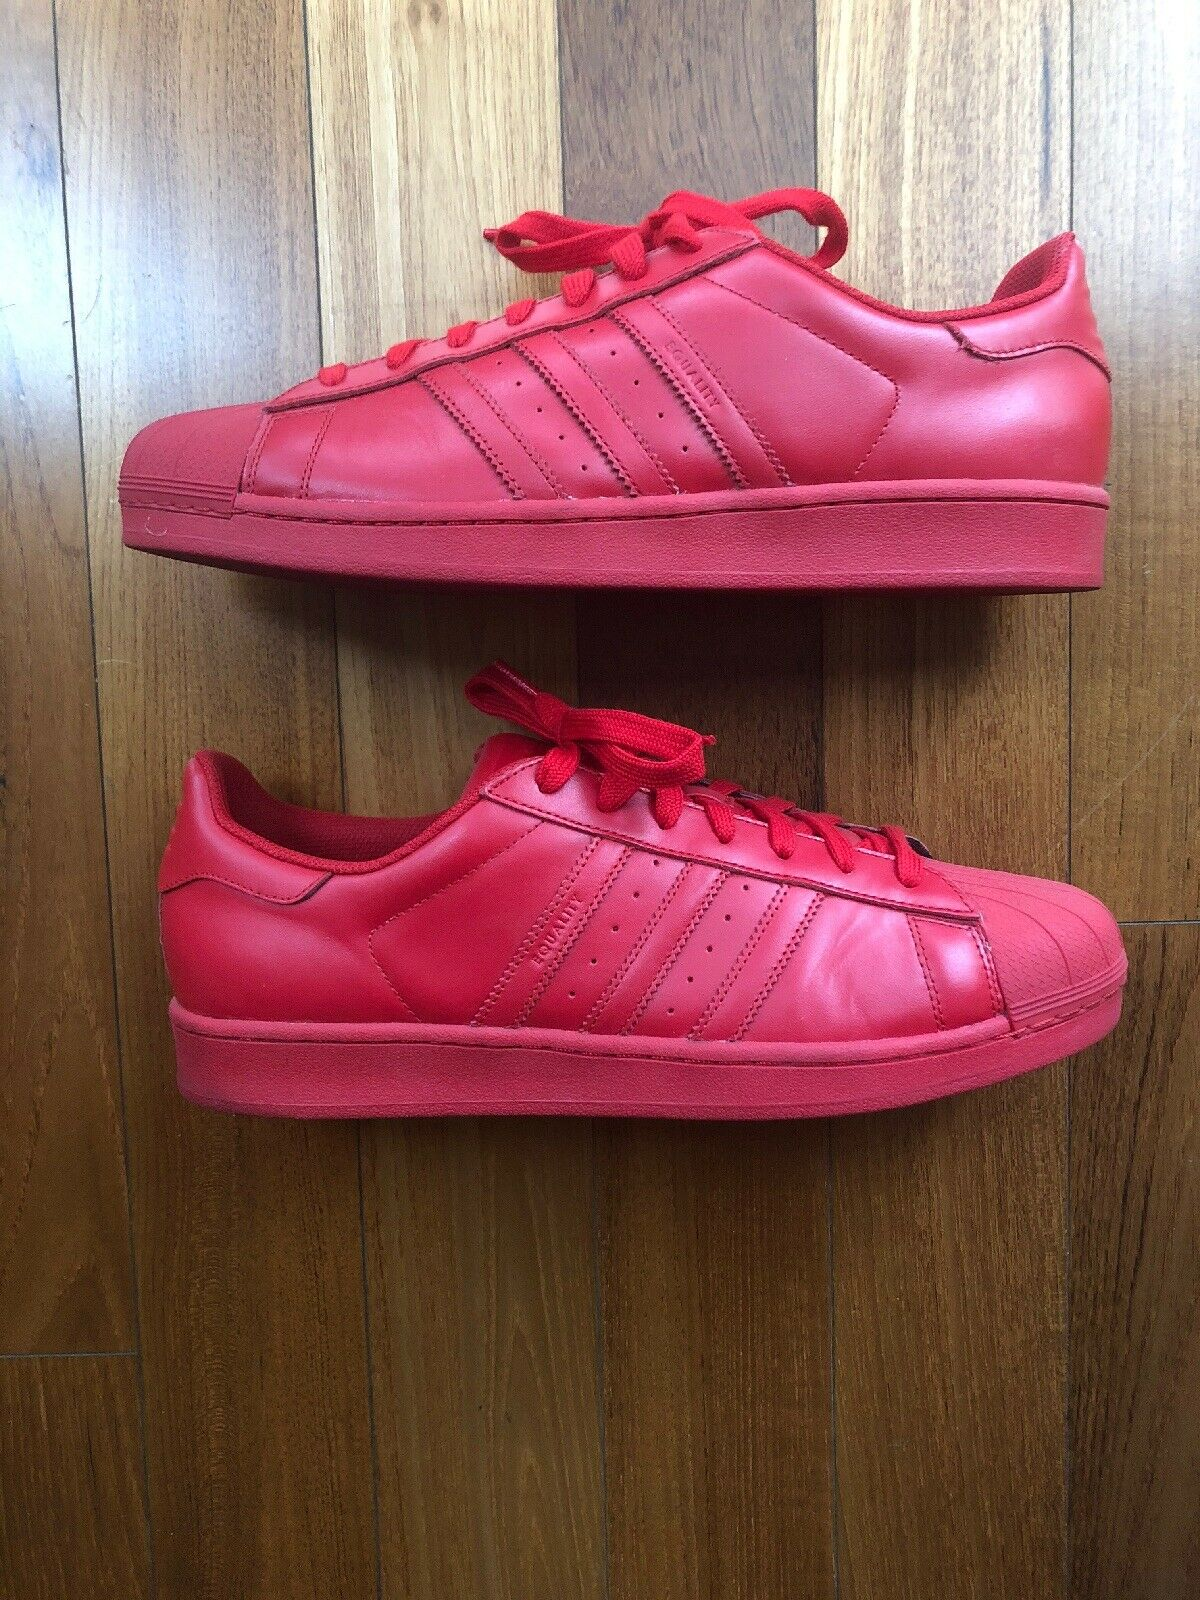 Adidas Superstar SuperColor Pack Pharrell Williams Rojo Tamaño 13